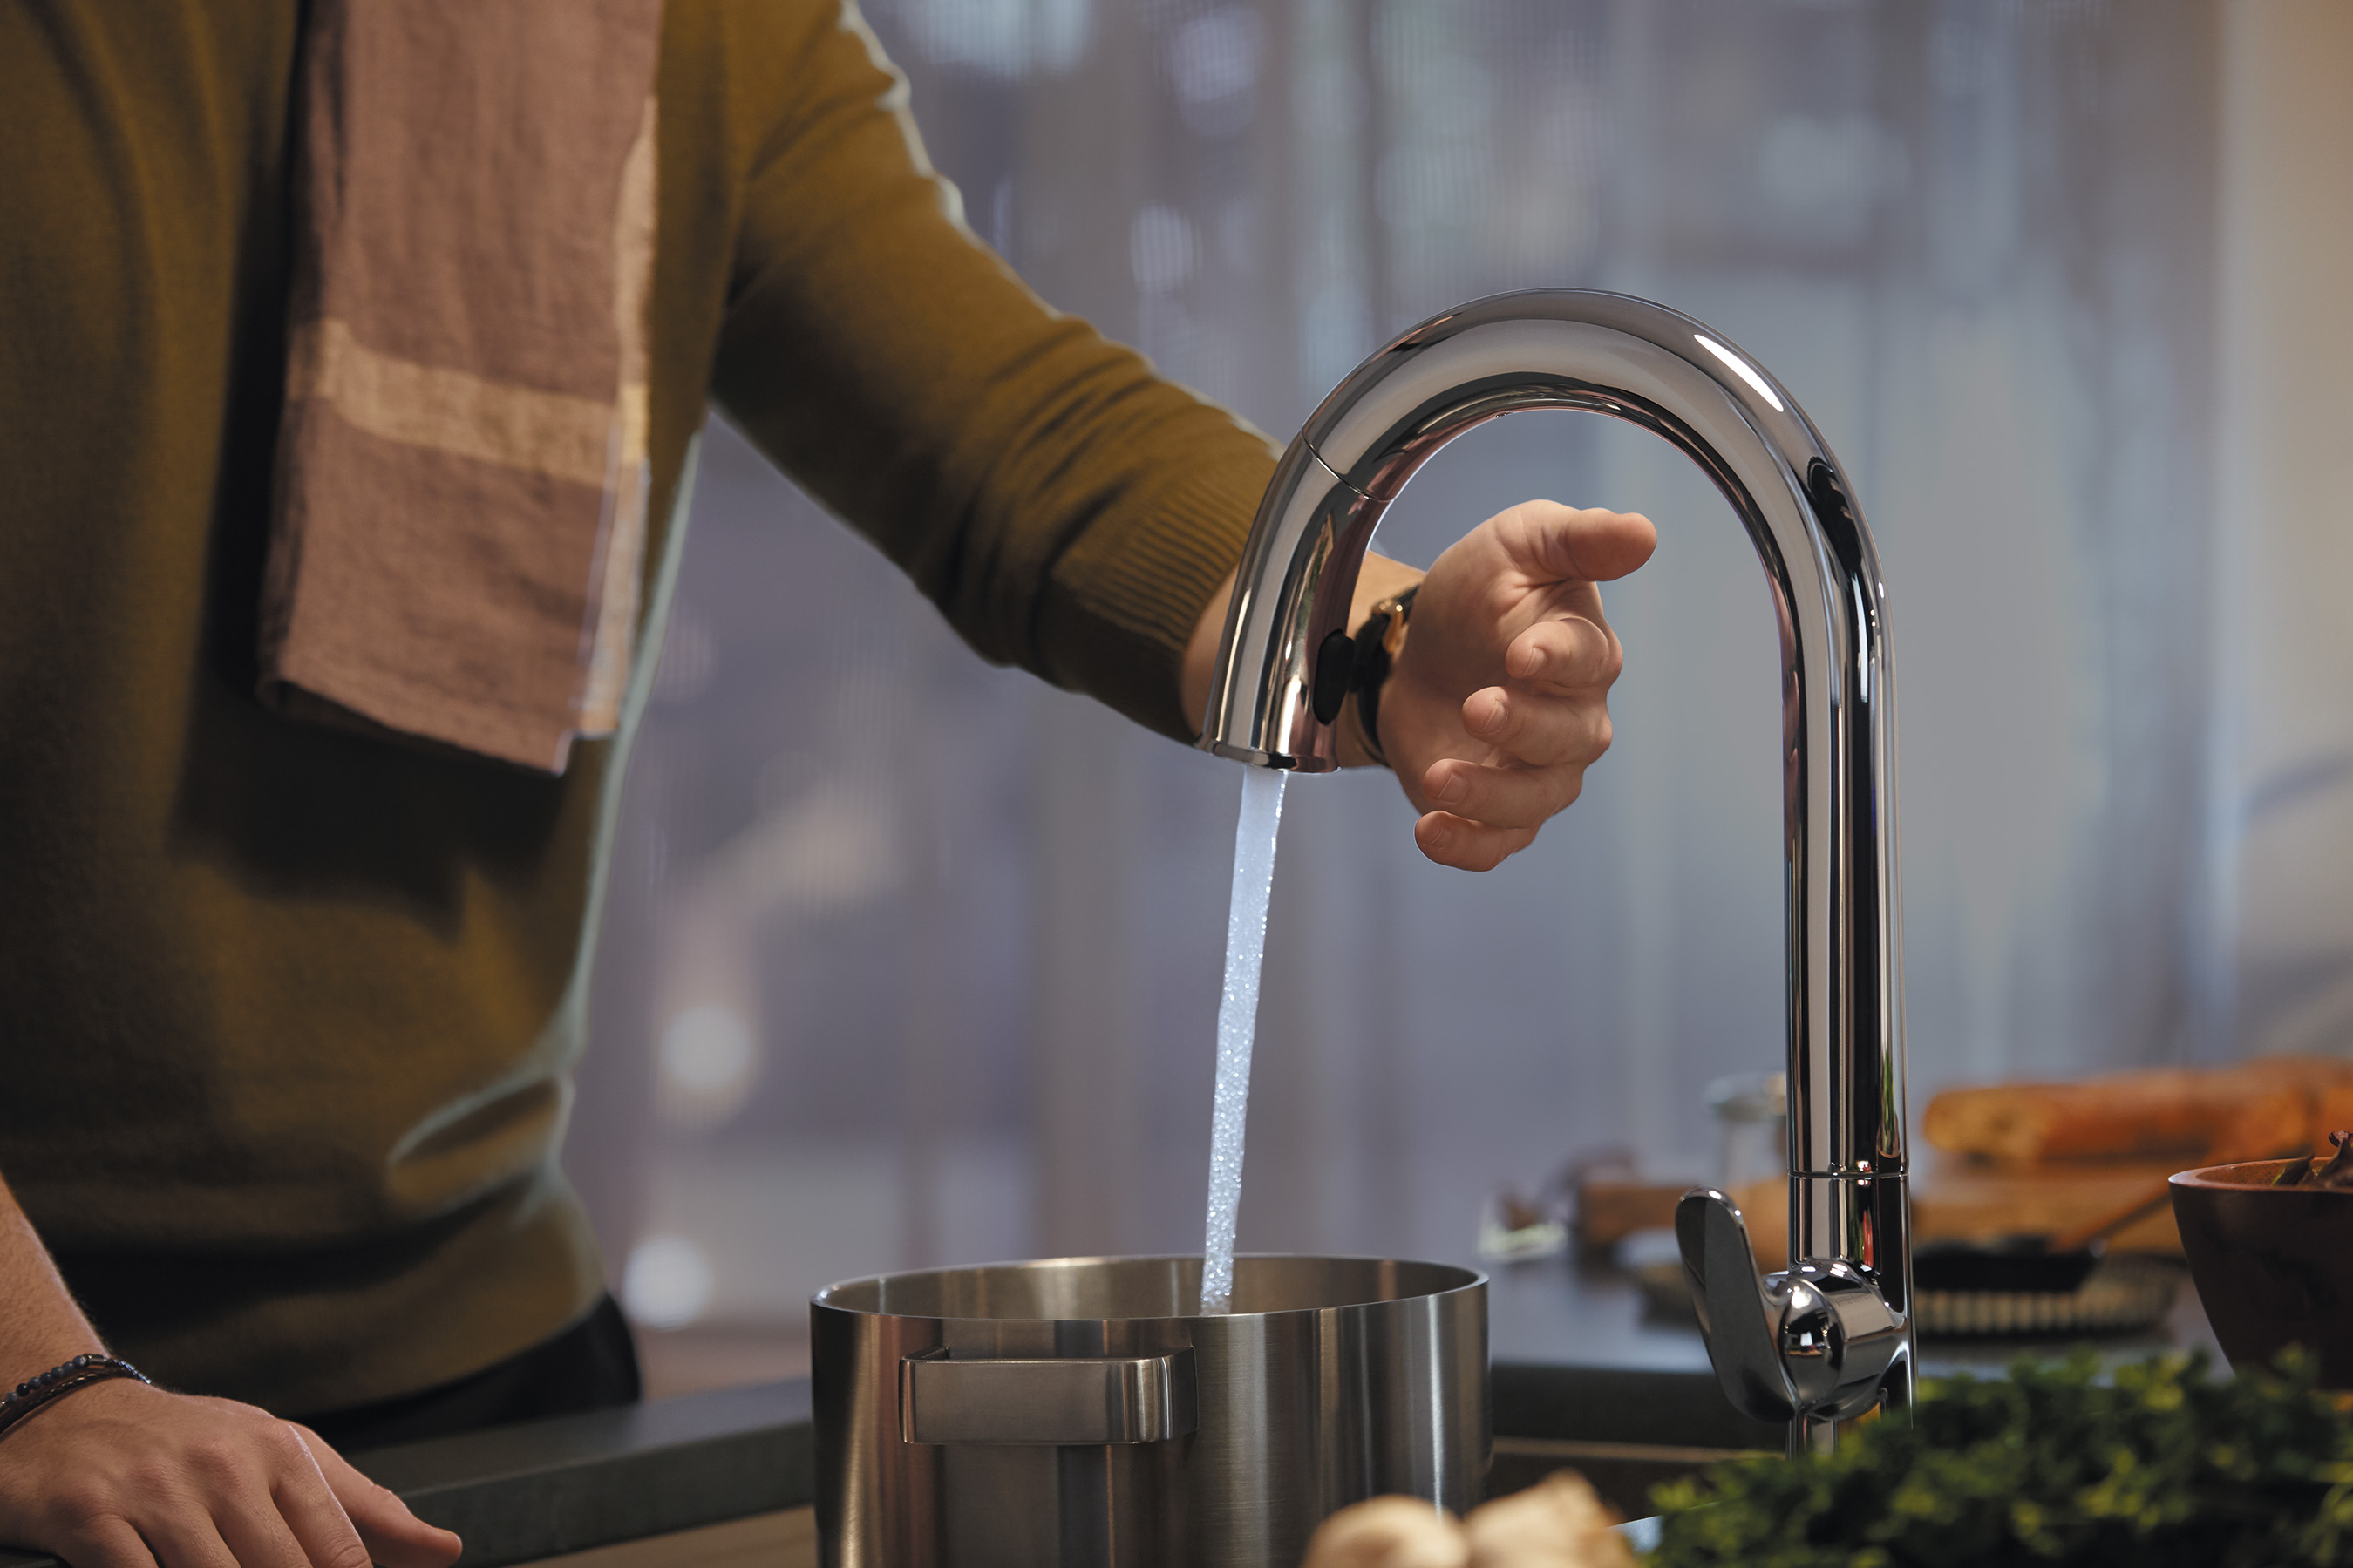 Kohler's Dimensions of Wellbeing Explores Hygiene Within Design